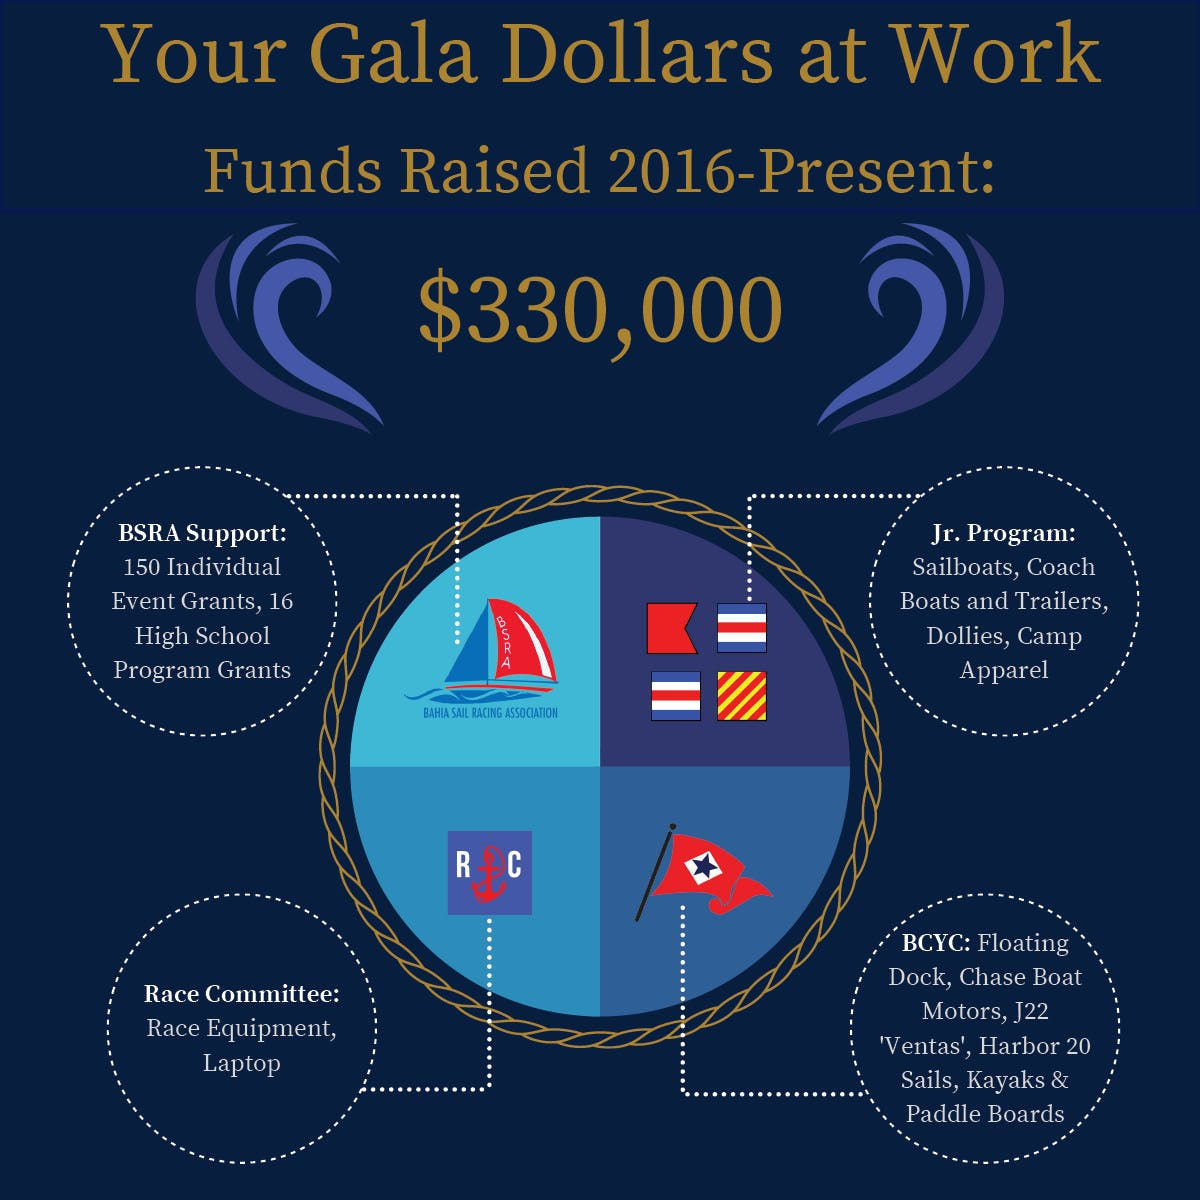 Your Gala Dollars at Work